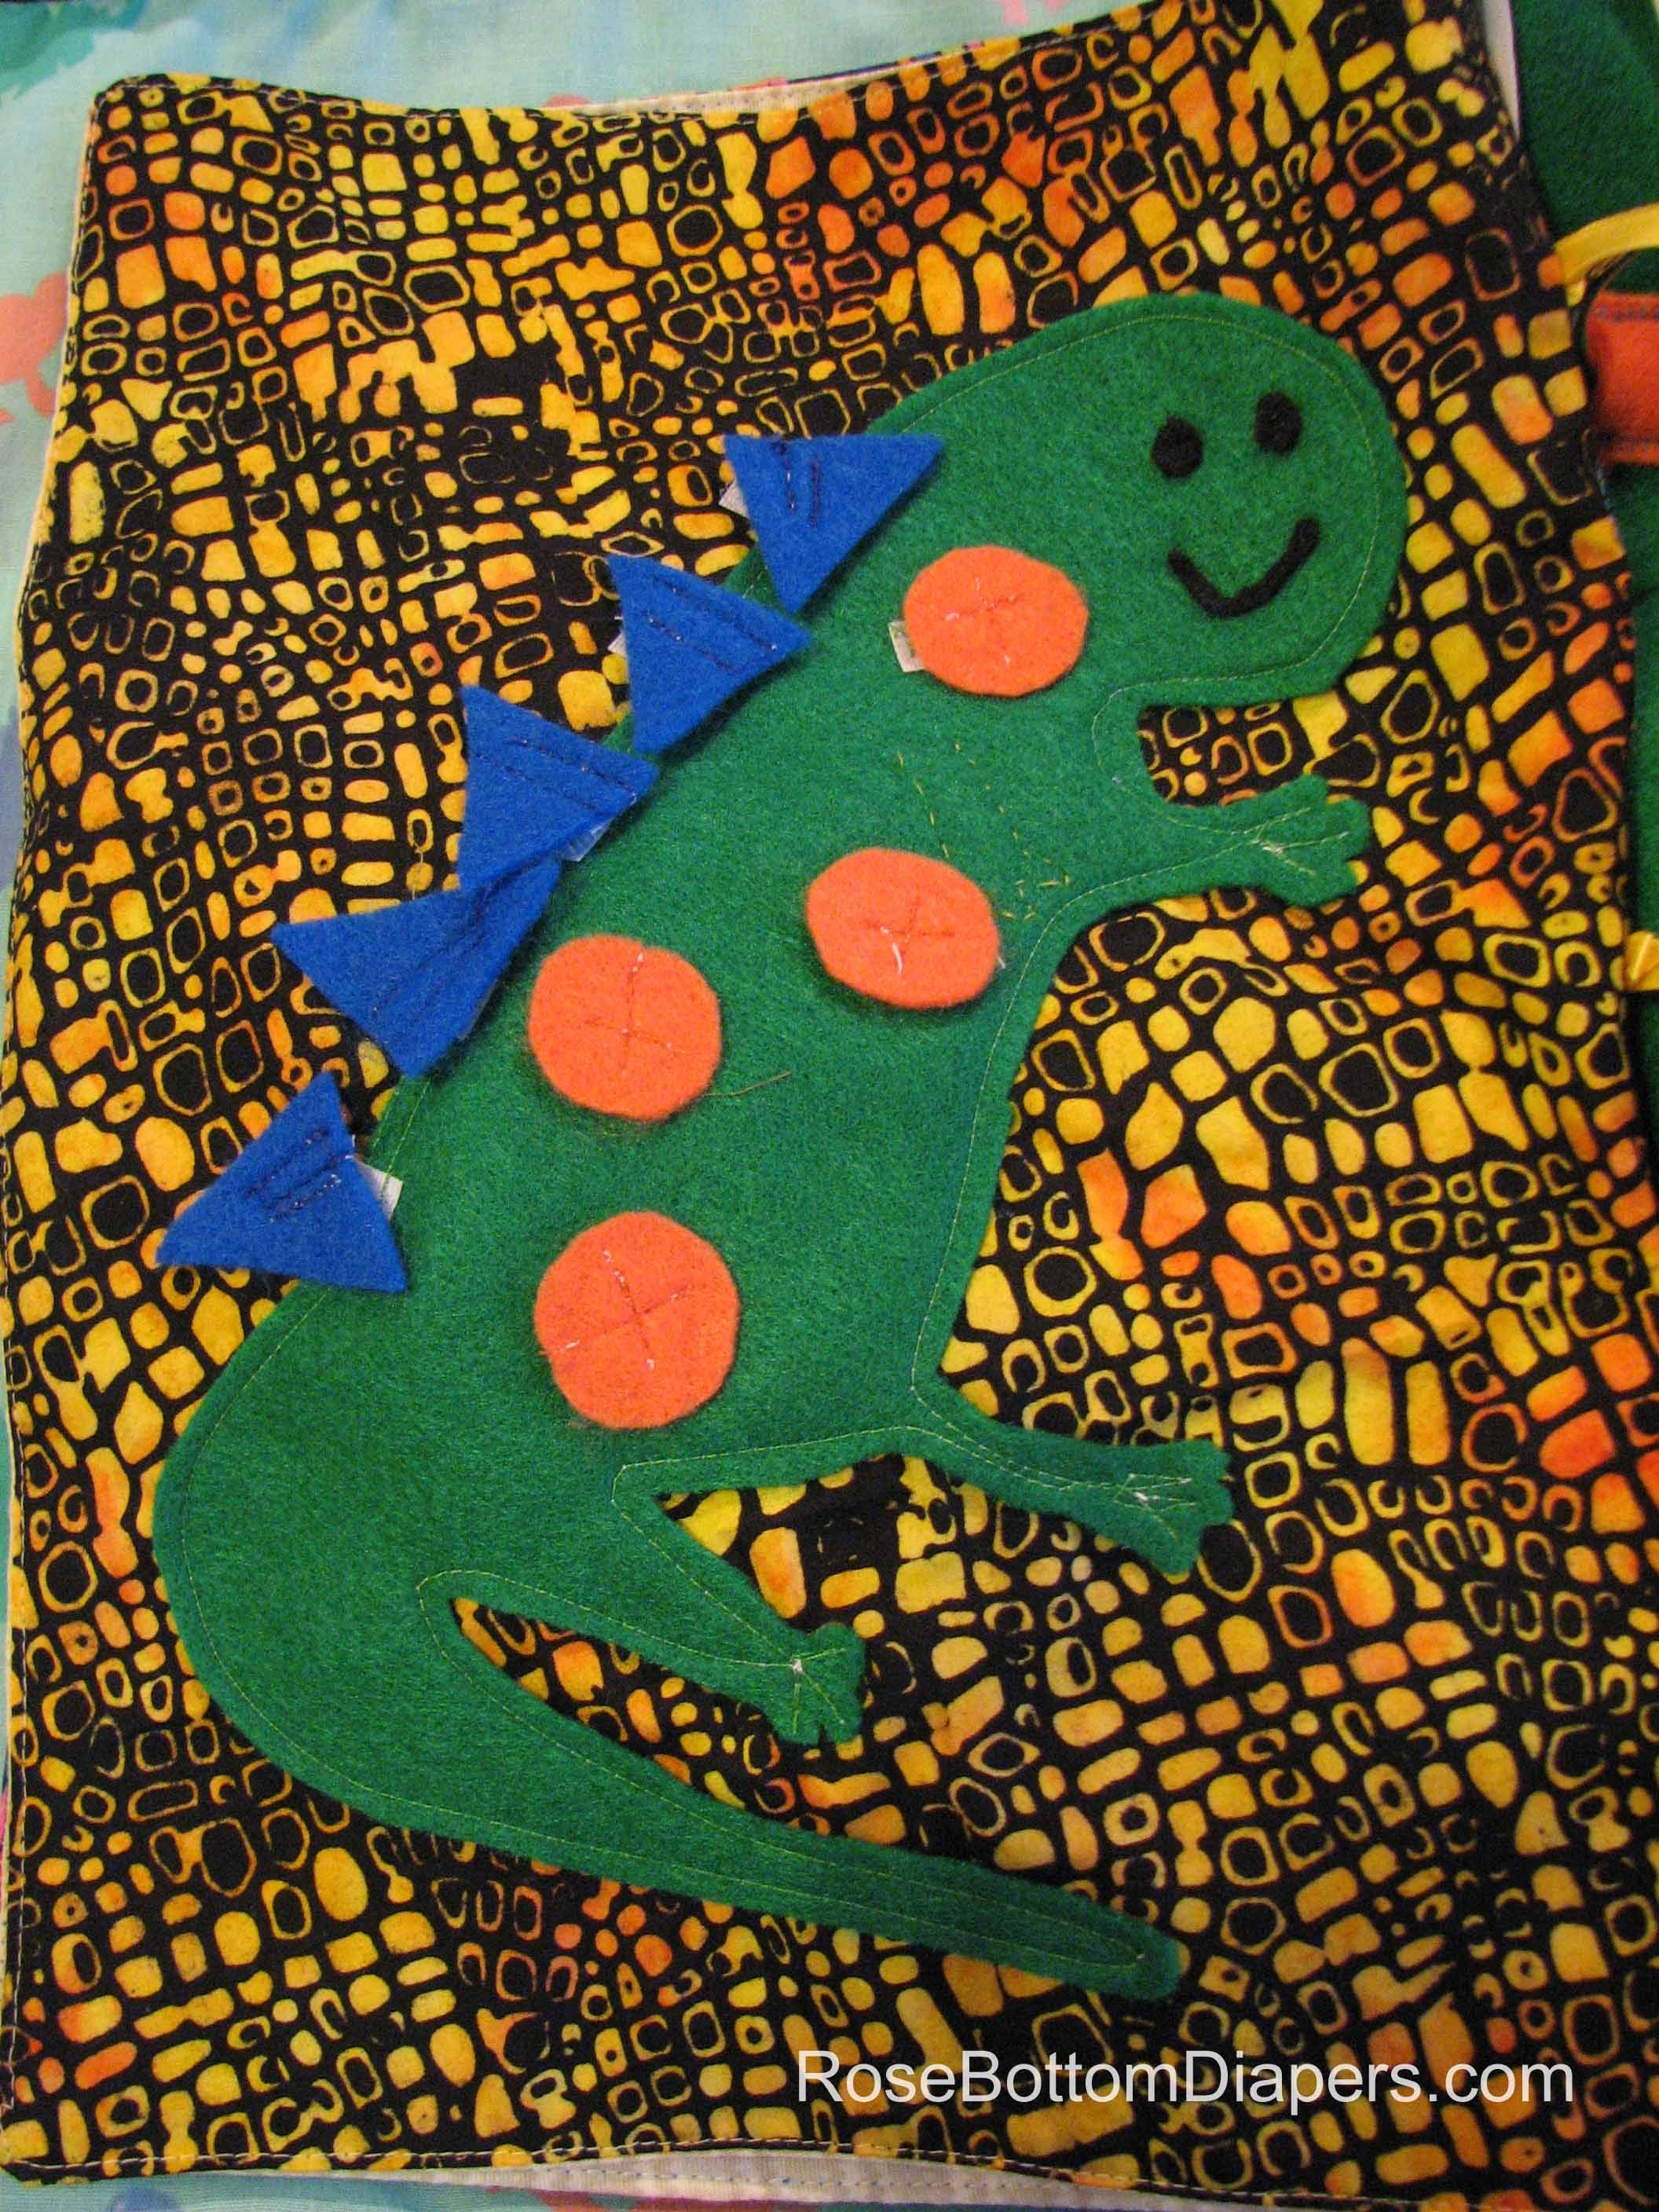 Dinosaur quiet book page. Velcro shapes on dinosaur.  Busy book ideas at RoseBottomDiapers.com